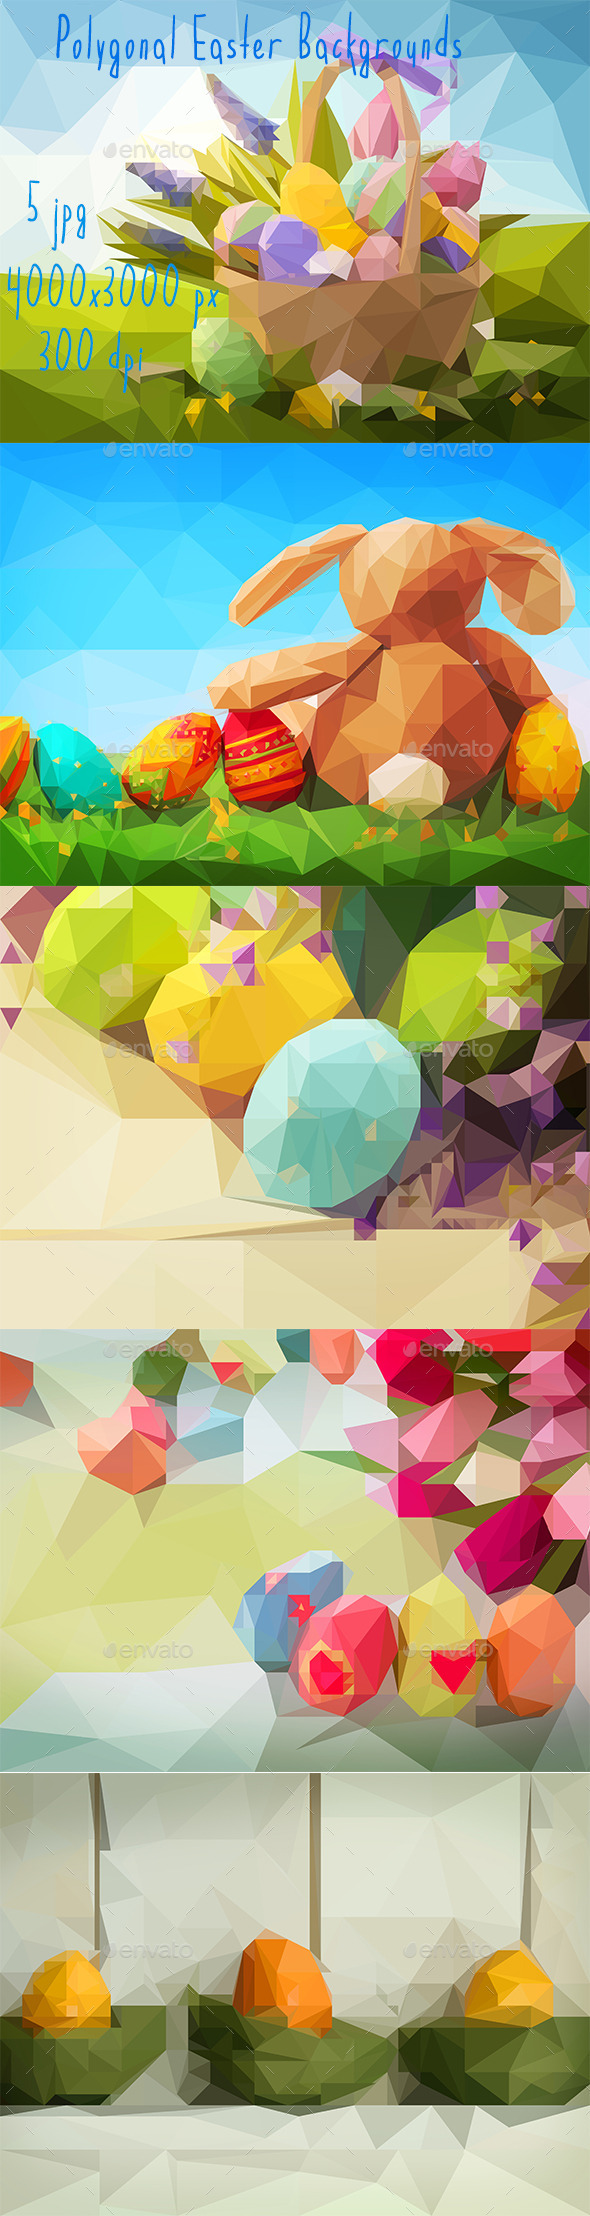 GraphicRiver 5 Polygonal Easter Backgrounds 11004989